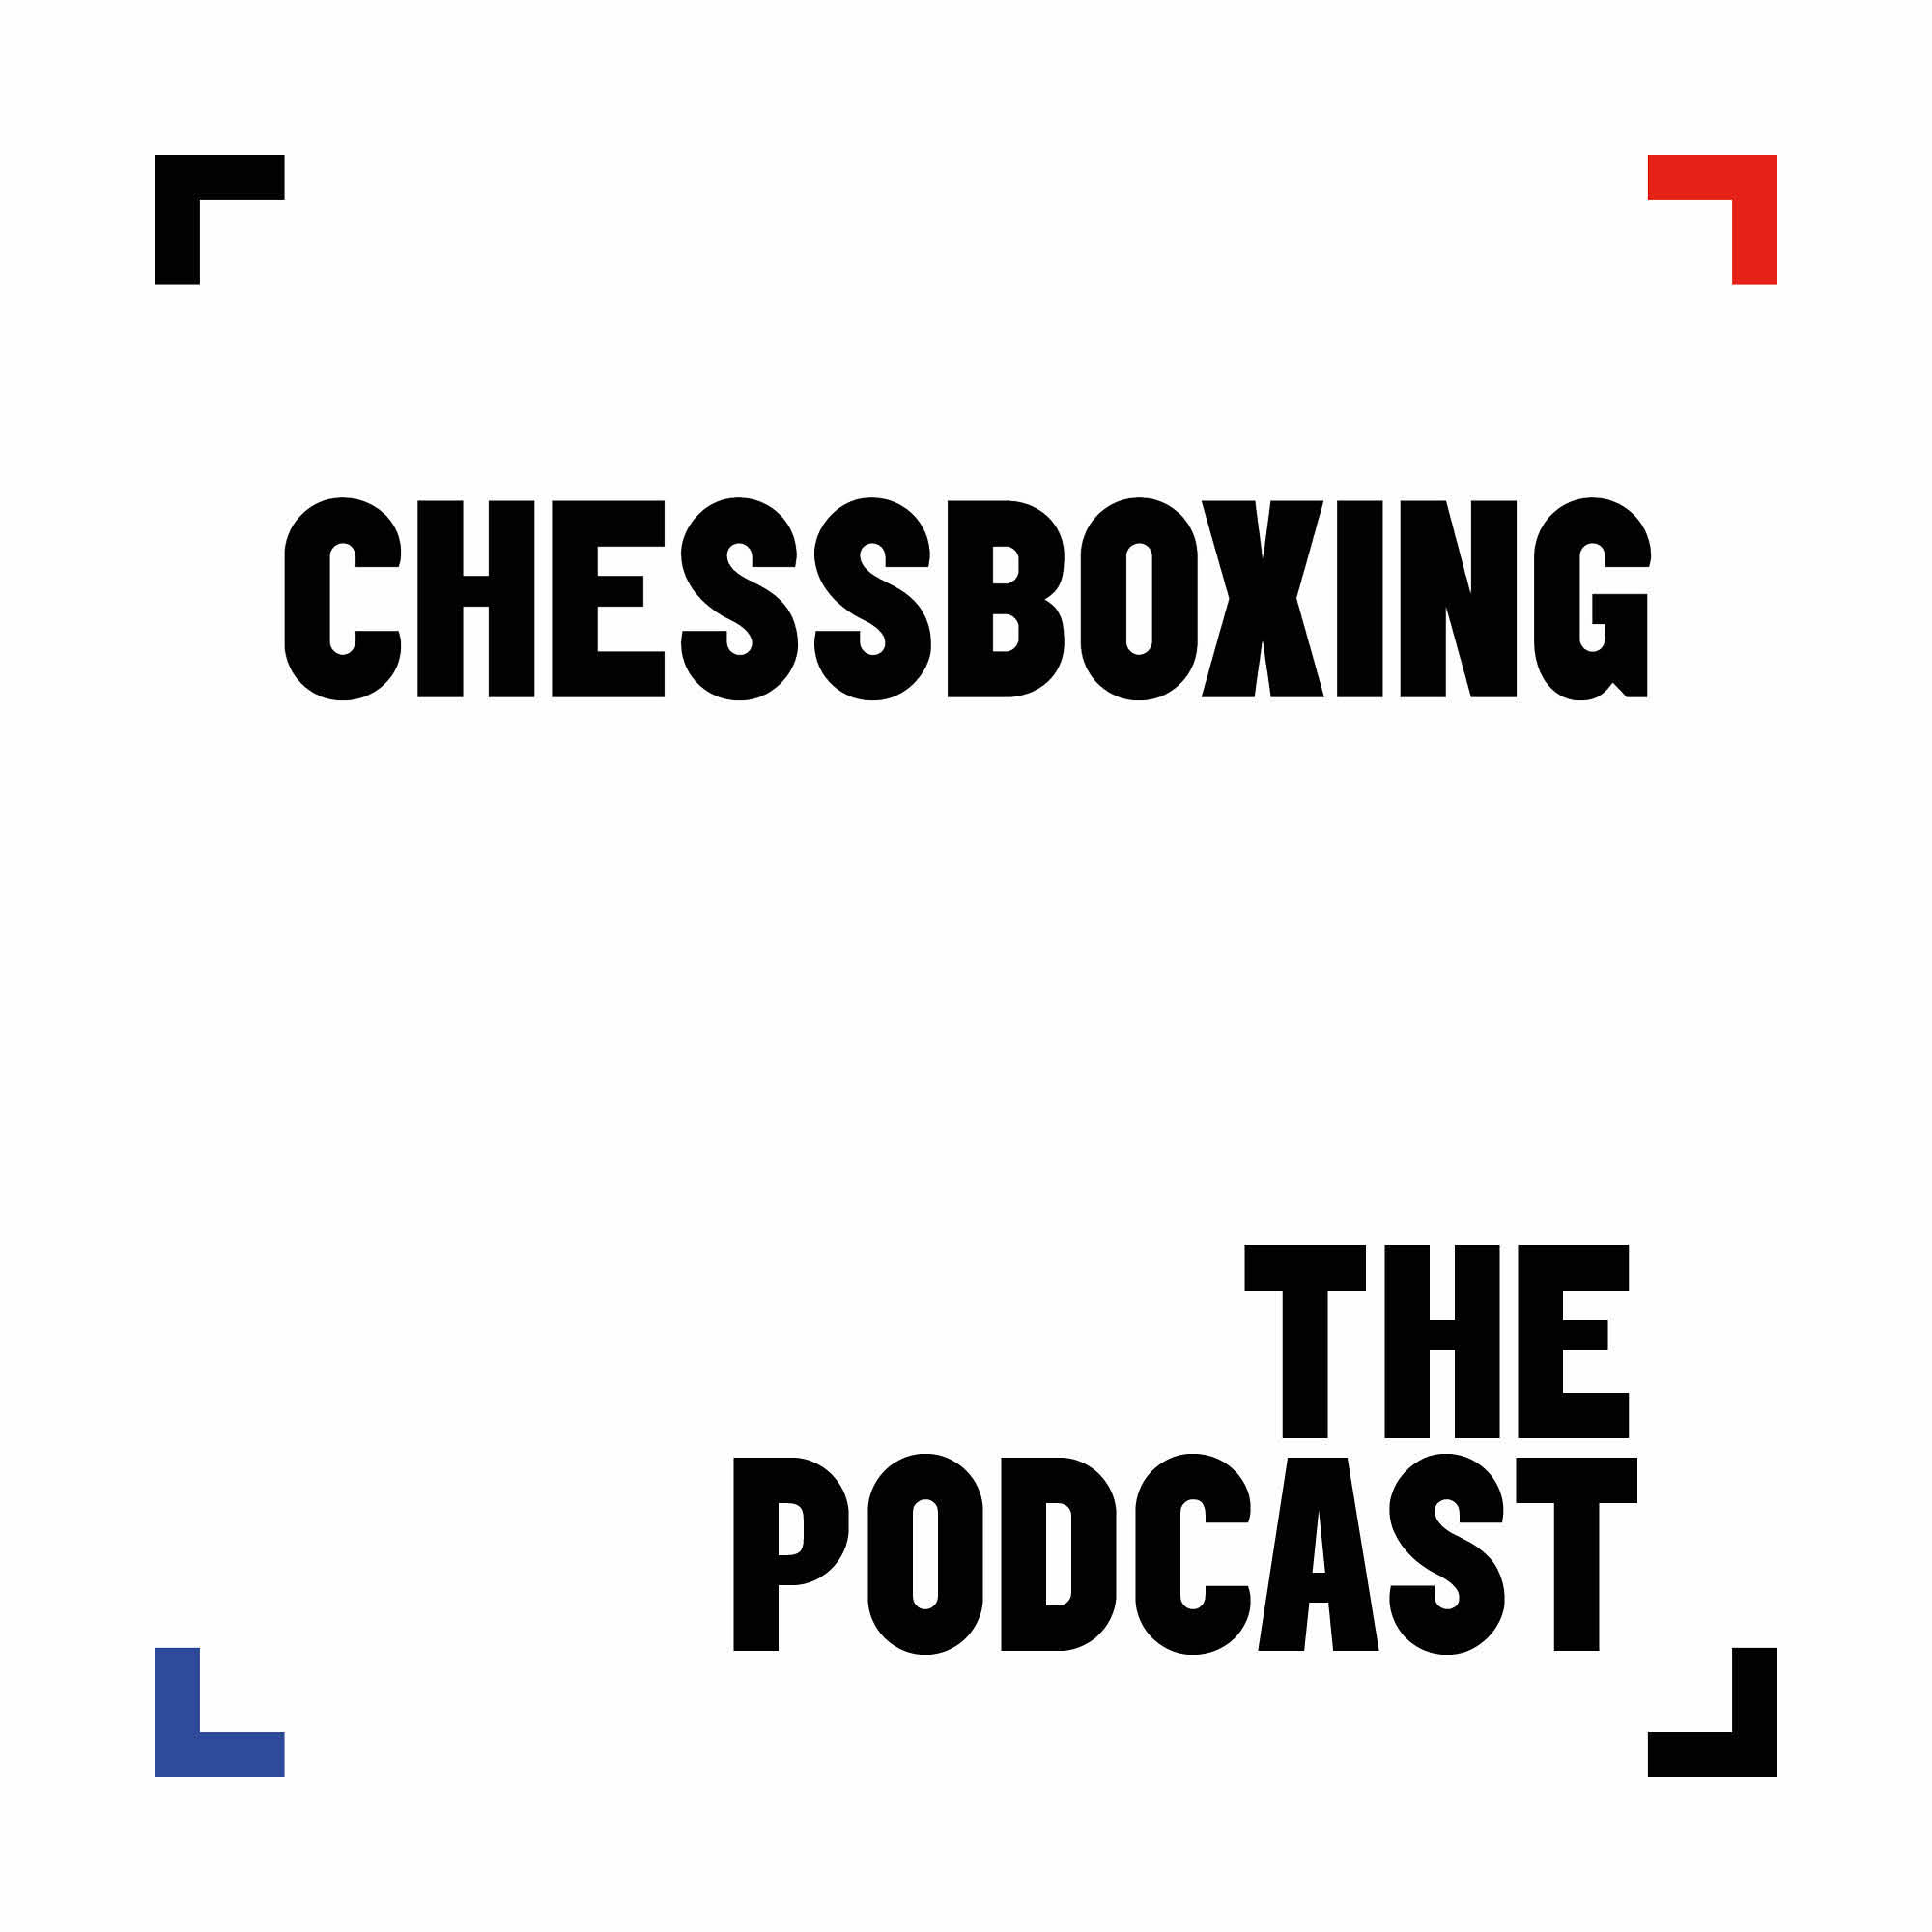 The Chessboxing Podcast